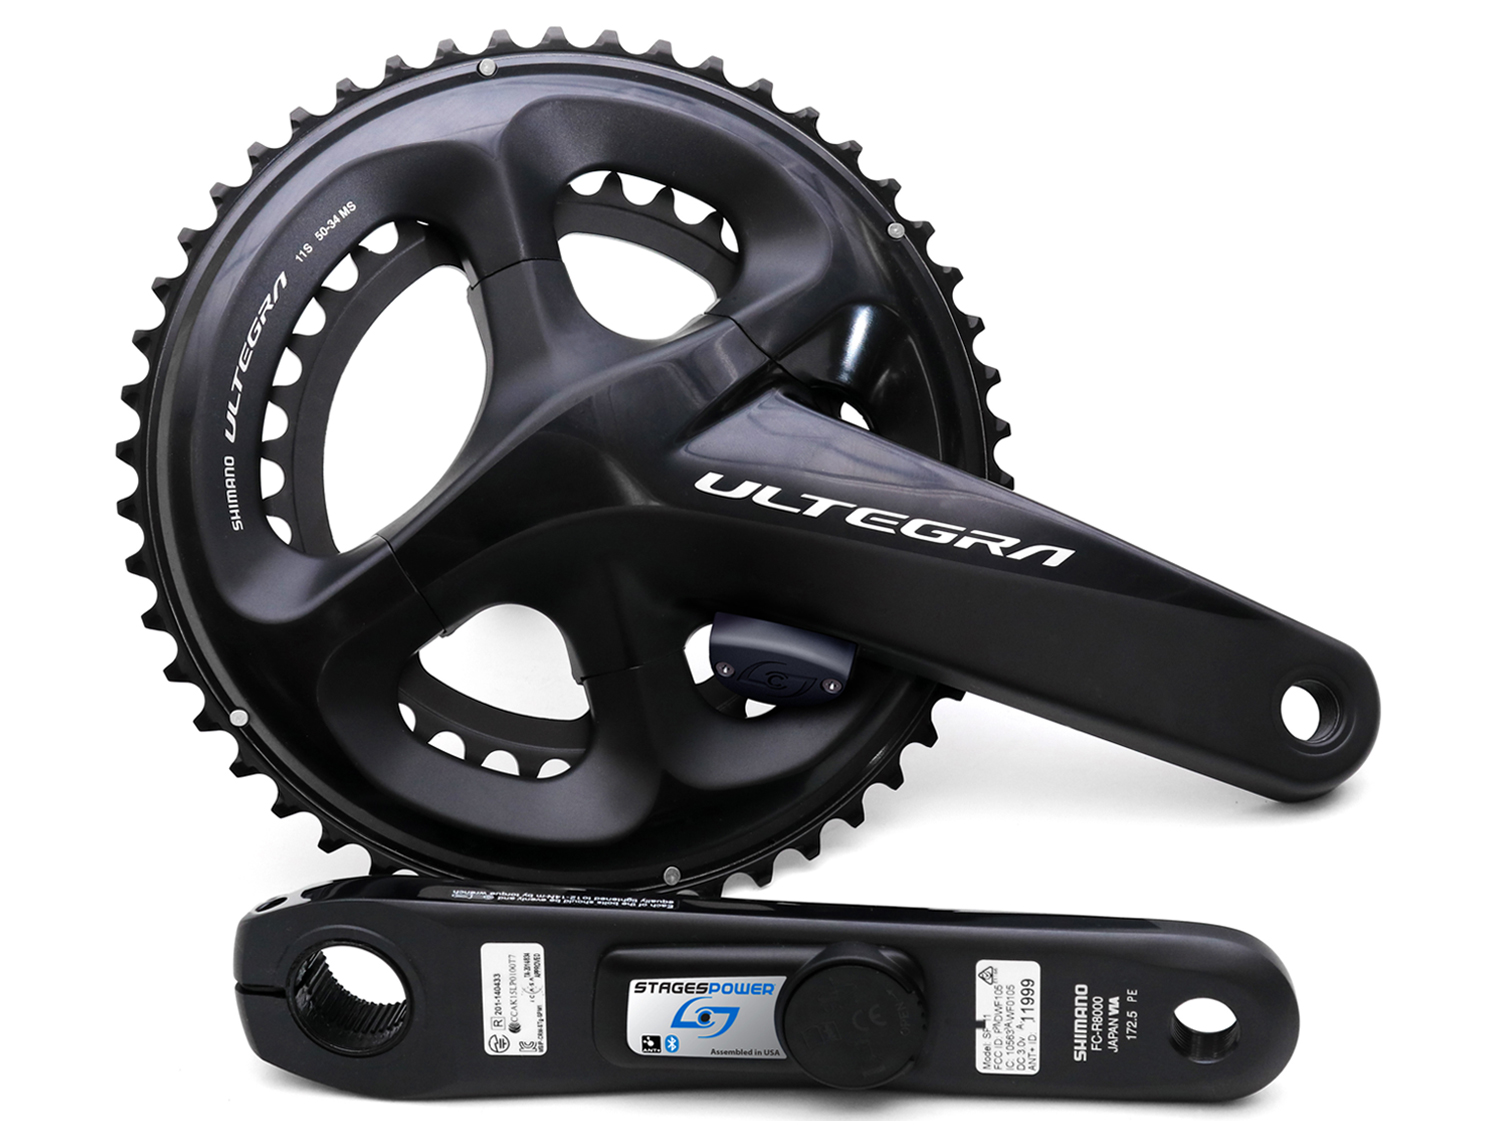 Stages Power L/R Shimano Ultegra 8000